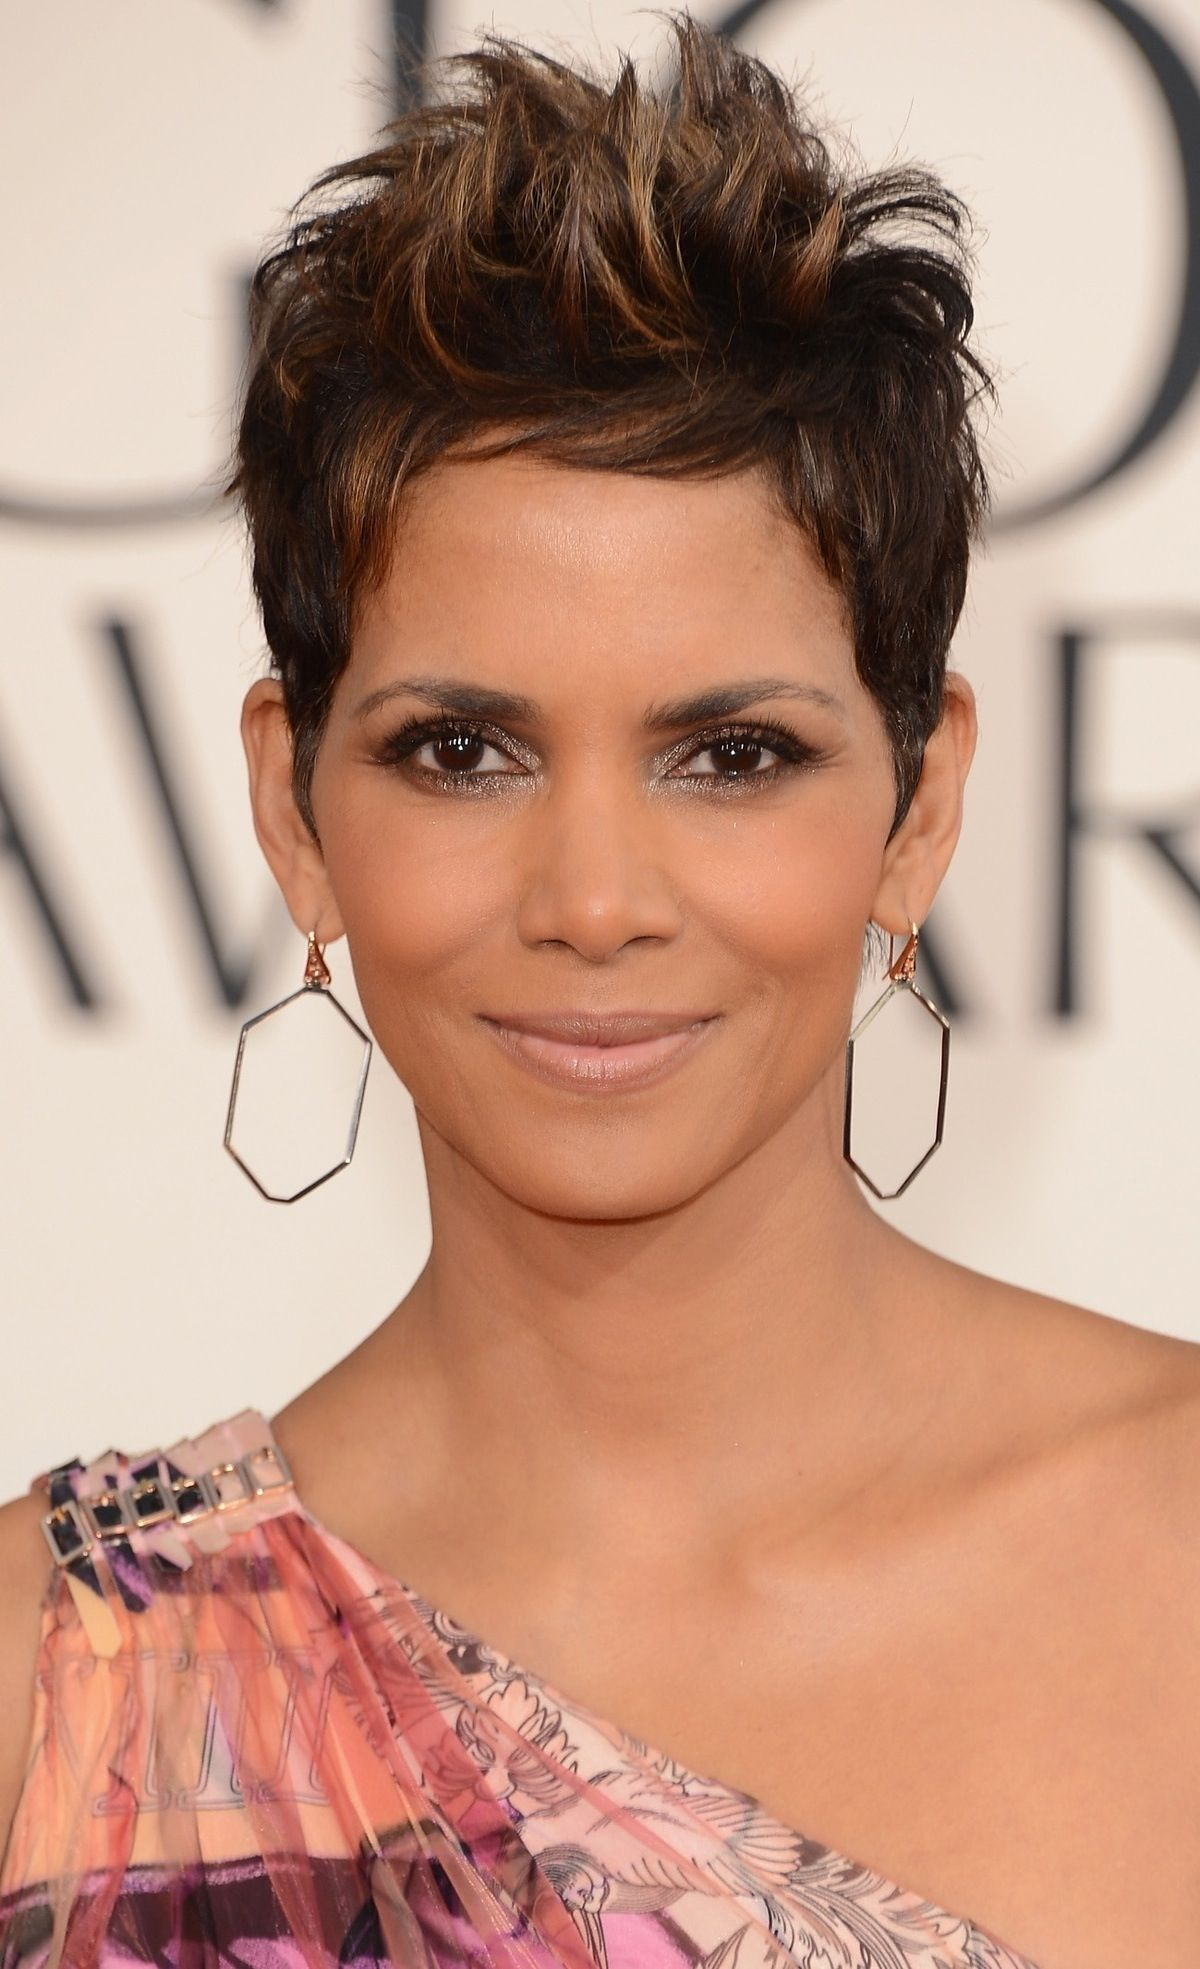 Coiffure Courte Halle Berry Halle Berry Pretty Hair Cuts Pixie Haircut Hair